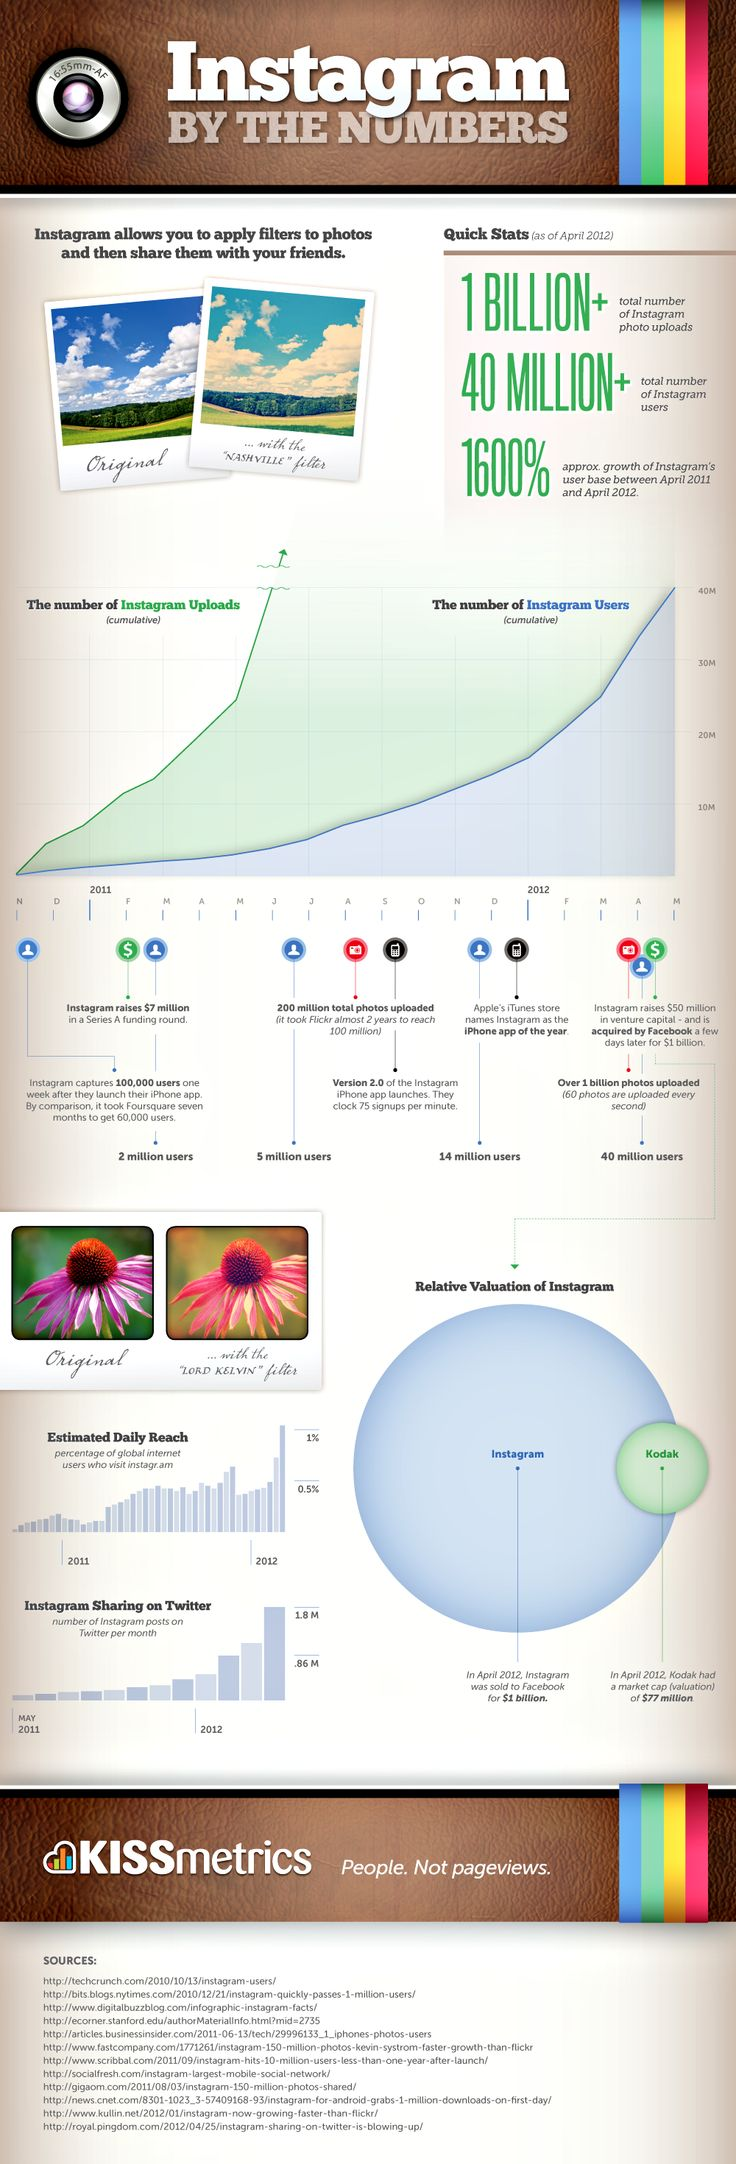 Instagram by the numbers #infographic